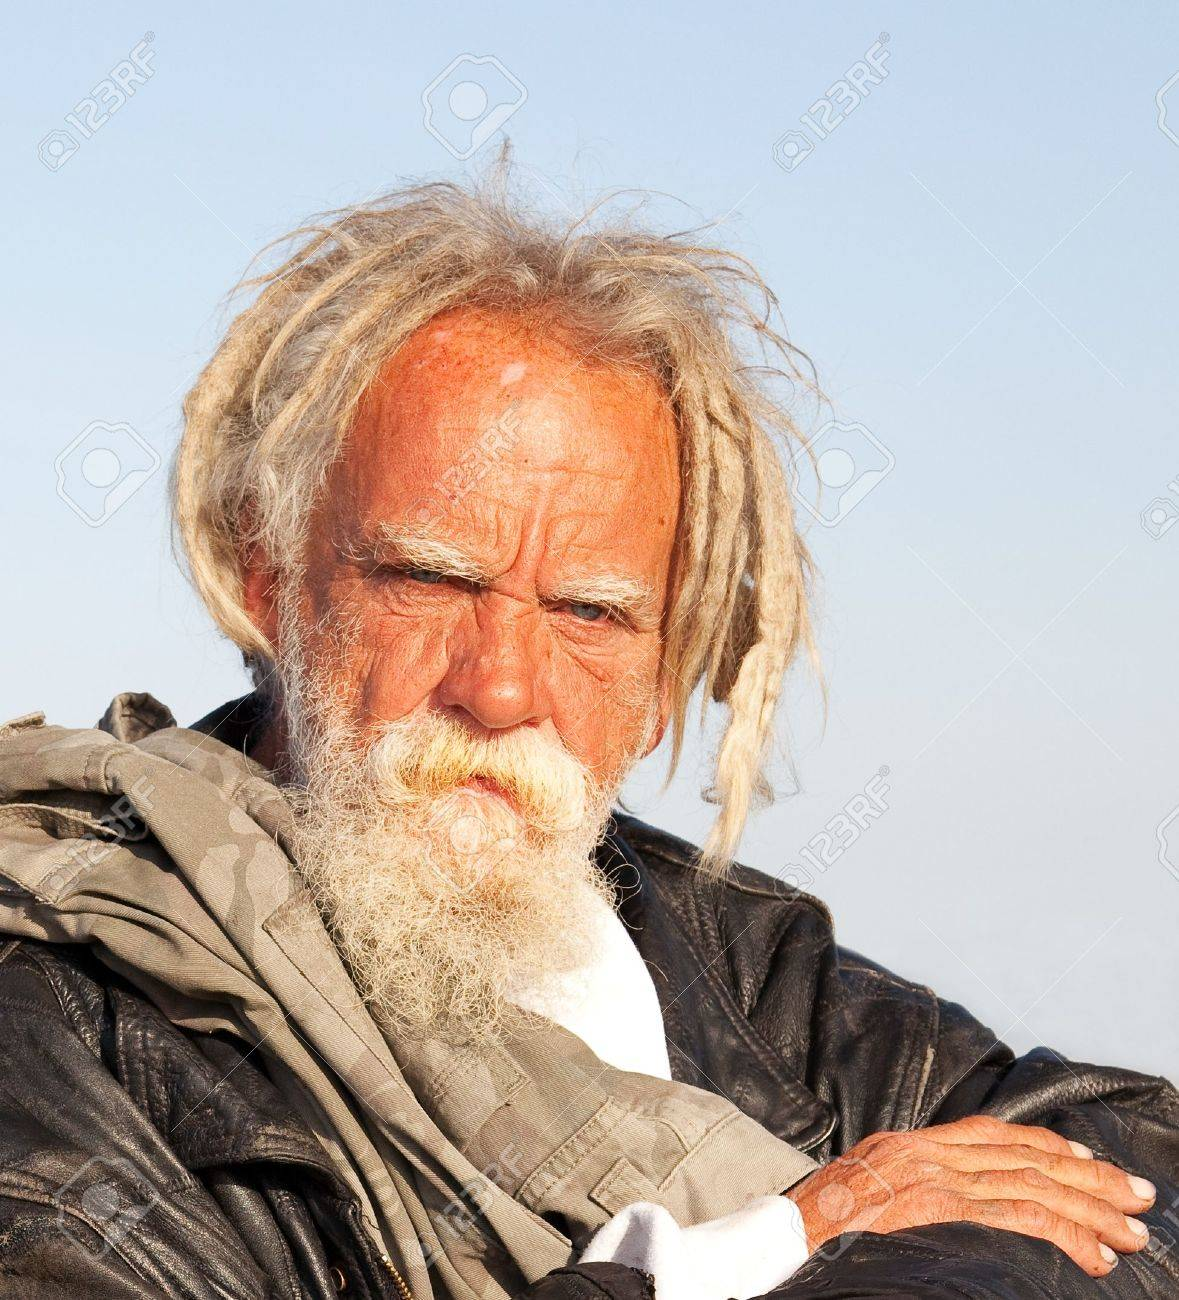 1.0 The Negative One - Old man Story 10477233-Portrait-of-a-homeless-man-in-Southern-California-Stock-Photo-old